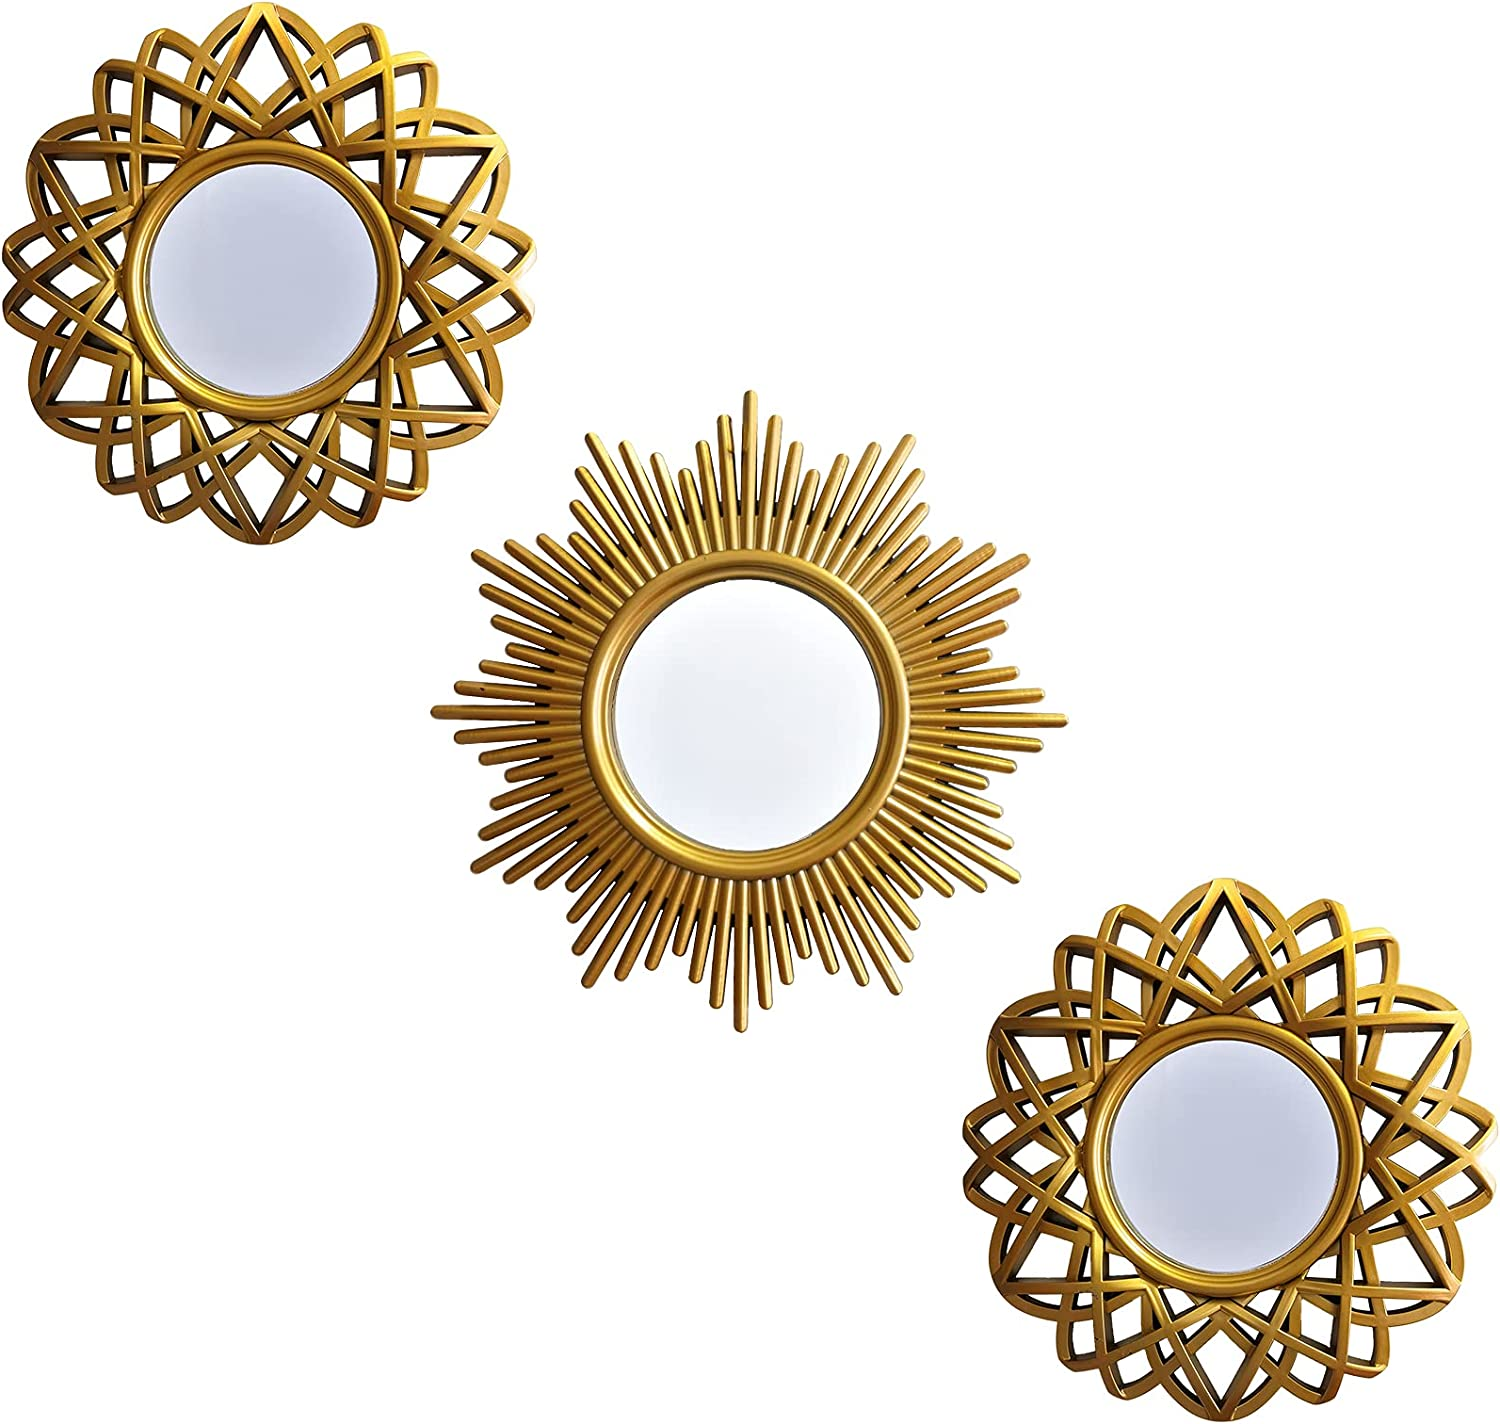 Gold Mirror Sets for Wall Decor Set of 3 Round Mirror Vintage Wall Decorations for Living Room, Bedroom, Dinning Room (Style 1)